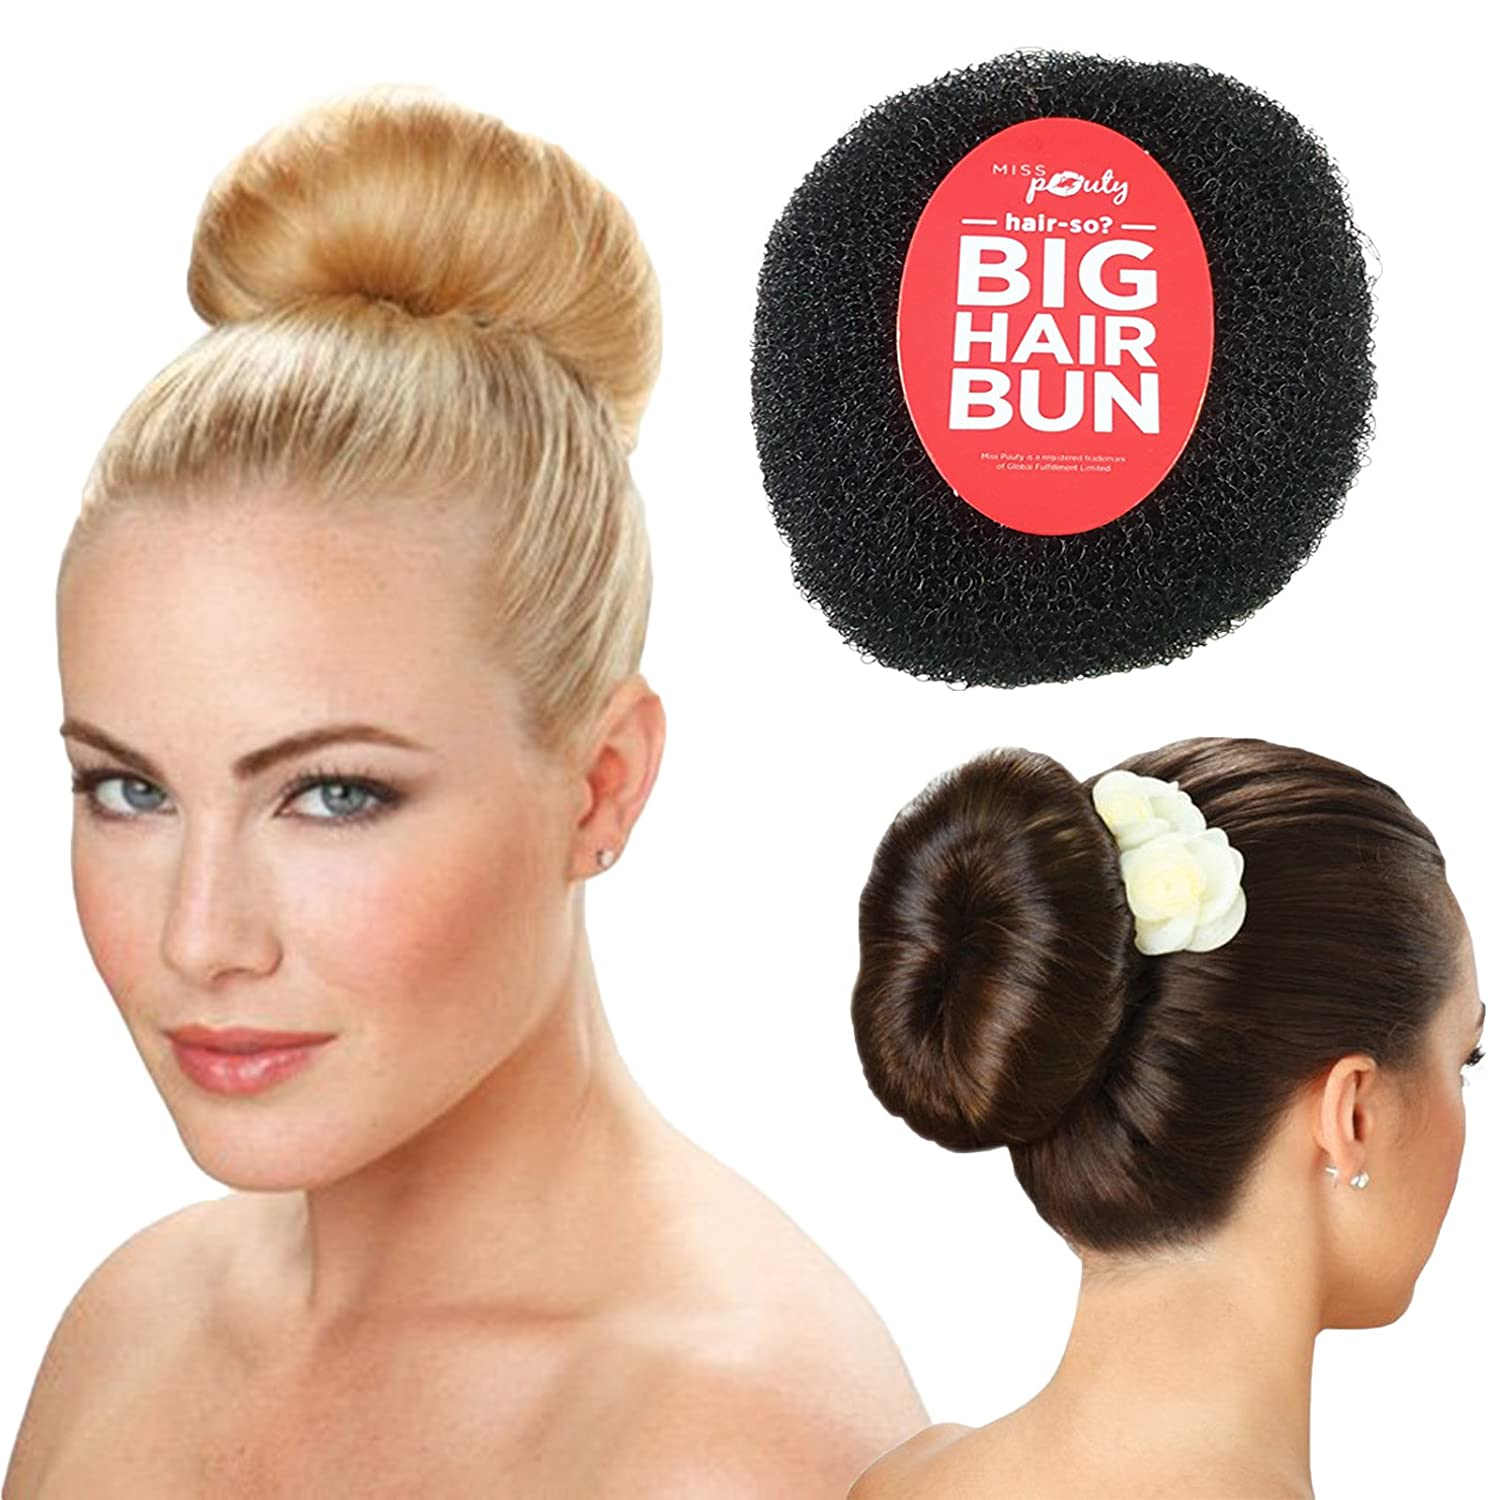 Hair-so? Massive 6 Inches Wide Big Hair Bun Extra Large Hair Doughnut Donut Bridal Wedding Hollywood Hair Style Bun Ring - Choose Colour- Brown, Black or Blonde (Black)